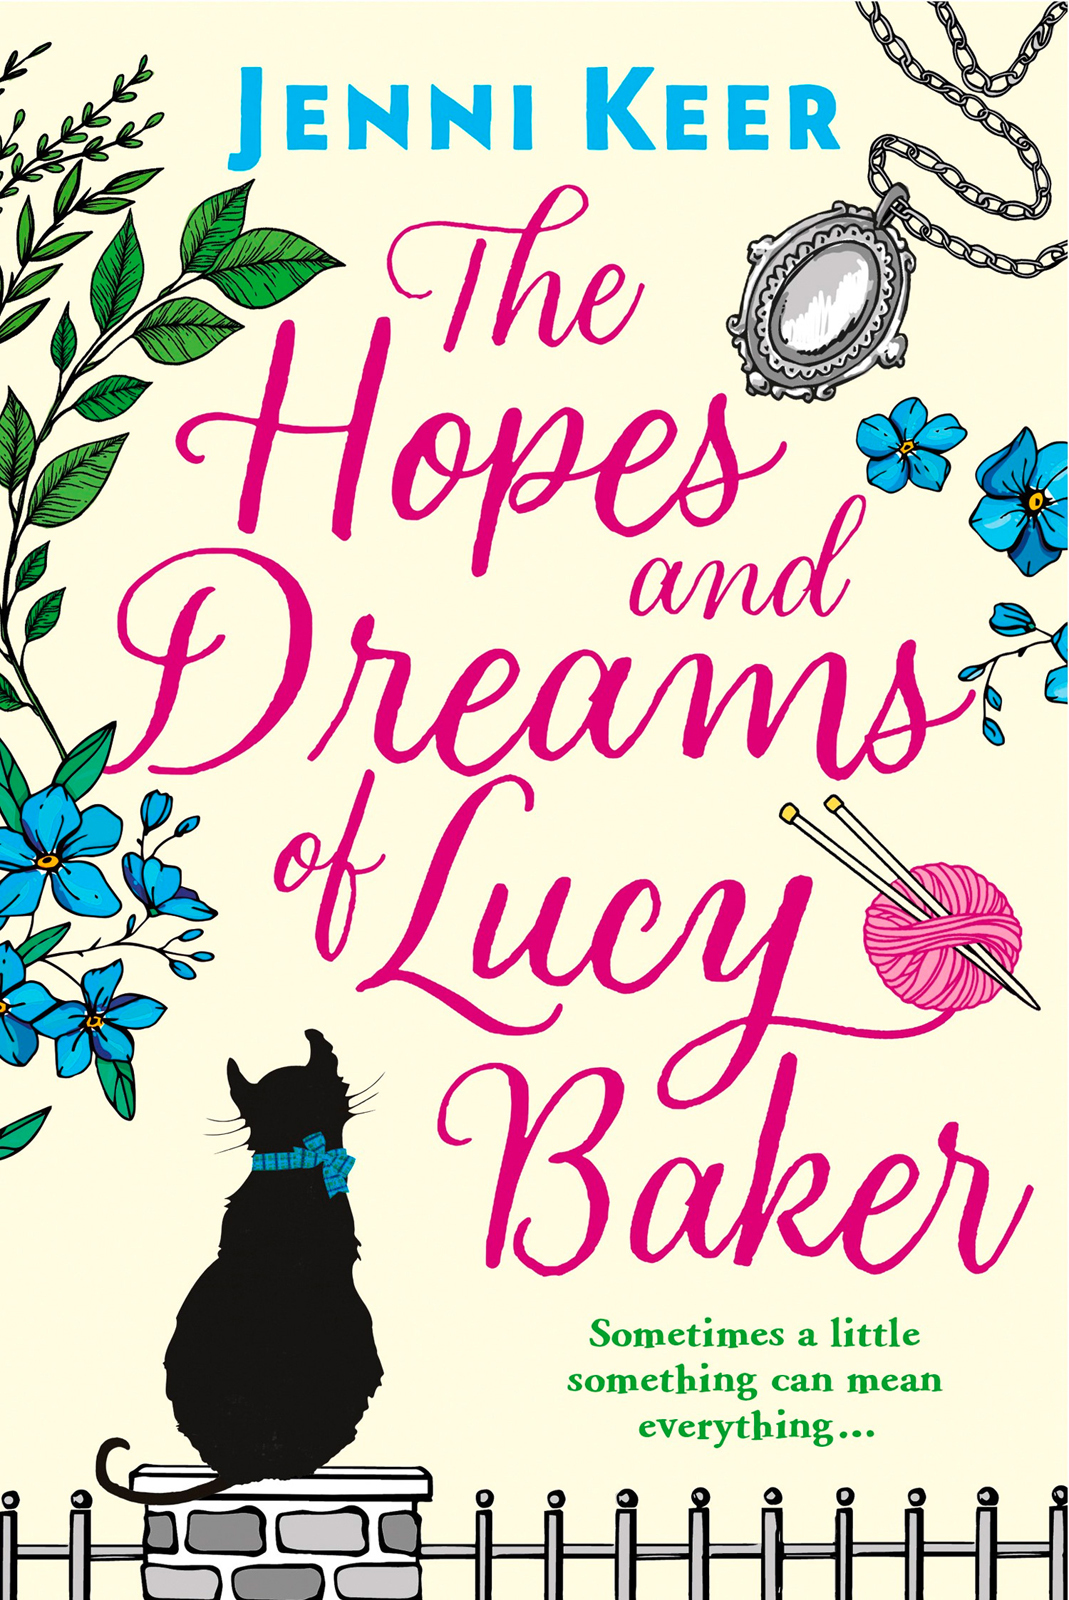 Jenni Keer The Hopes and Dreams of Lucy Baker: The most heart-warming book you'll read this year lynsey james a season of hopes and dreams